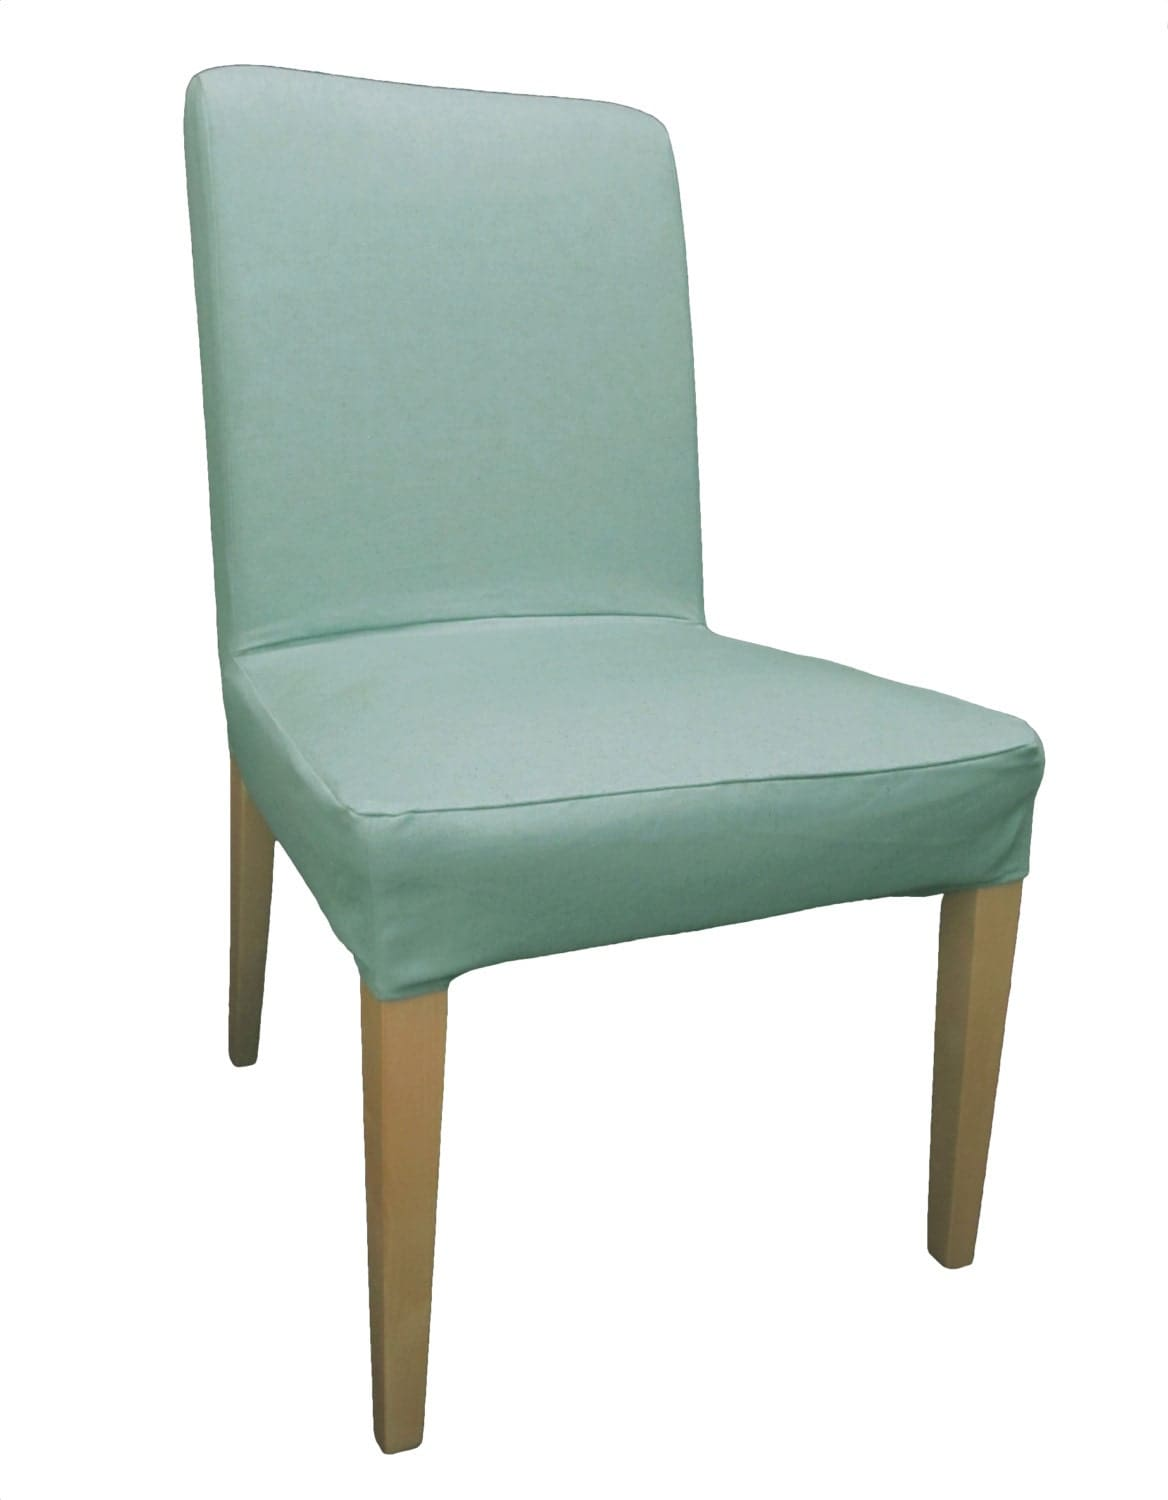 Slipcover for older ikea henriksdal dining chair by for Ikea sofa slipcovers discontinued